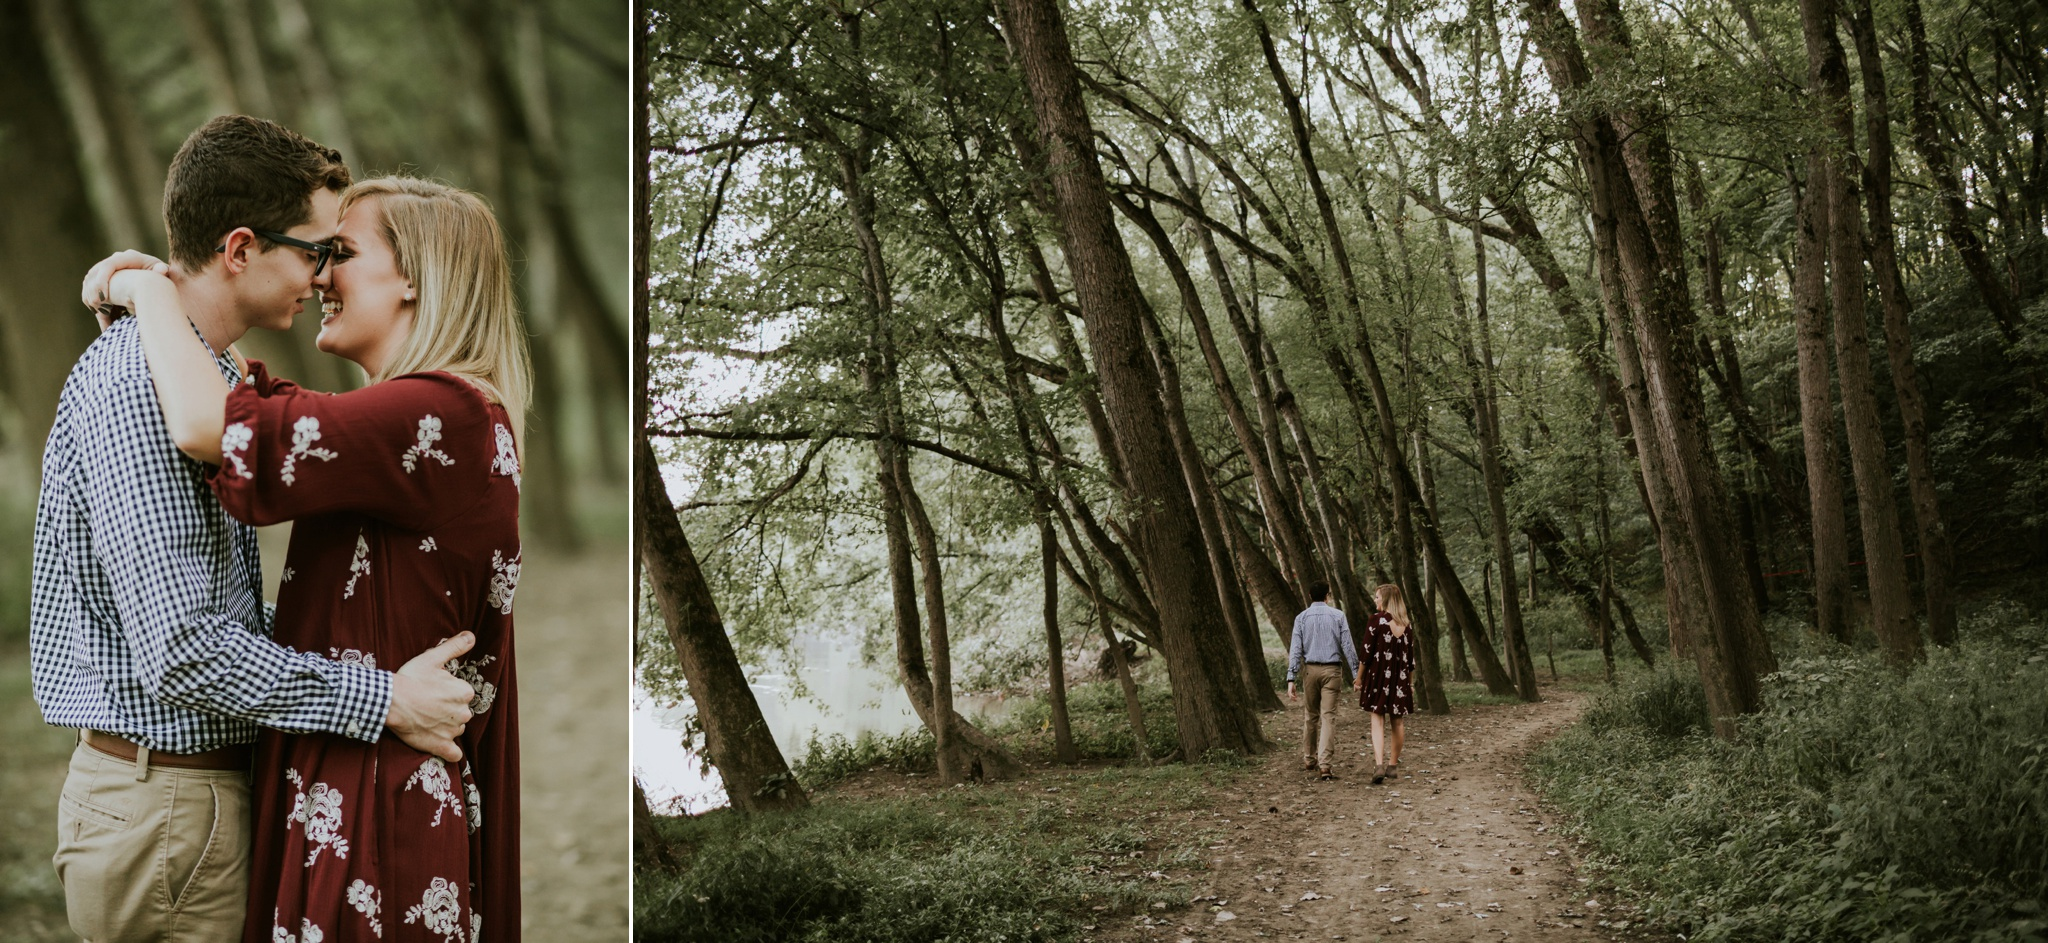 Hannah and Zach Engagement Session-22_WEB_WEB.jpg